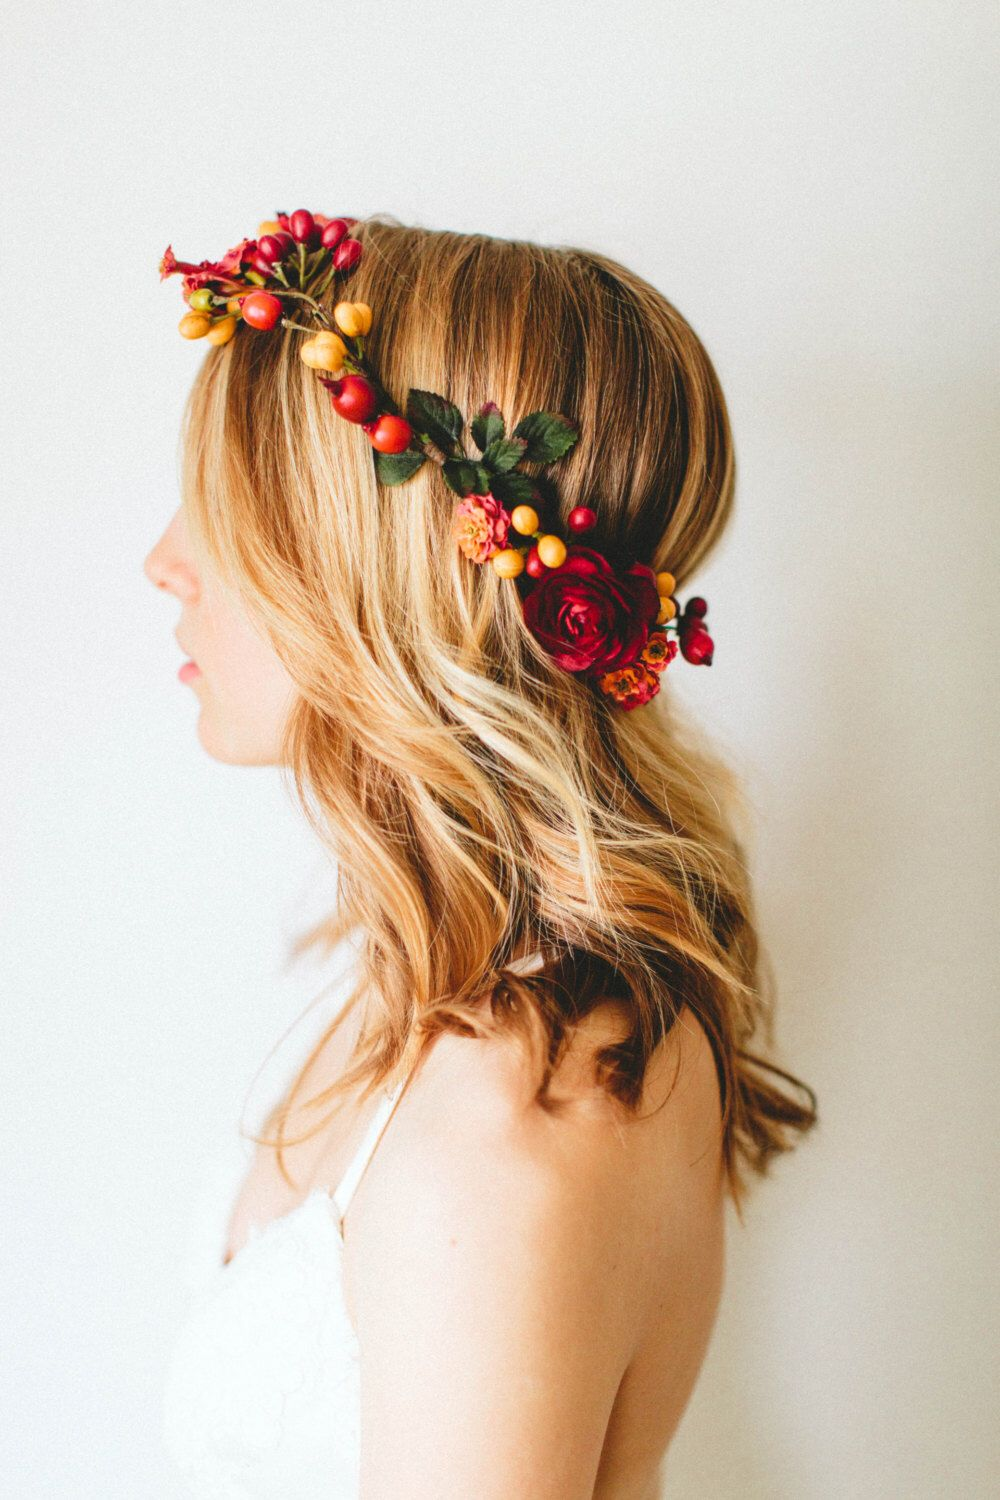 Berries Galore Fall Flower Crown Maternity Photography Pinterest